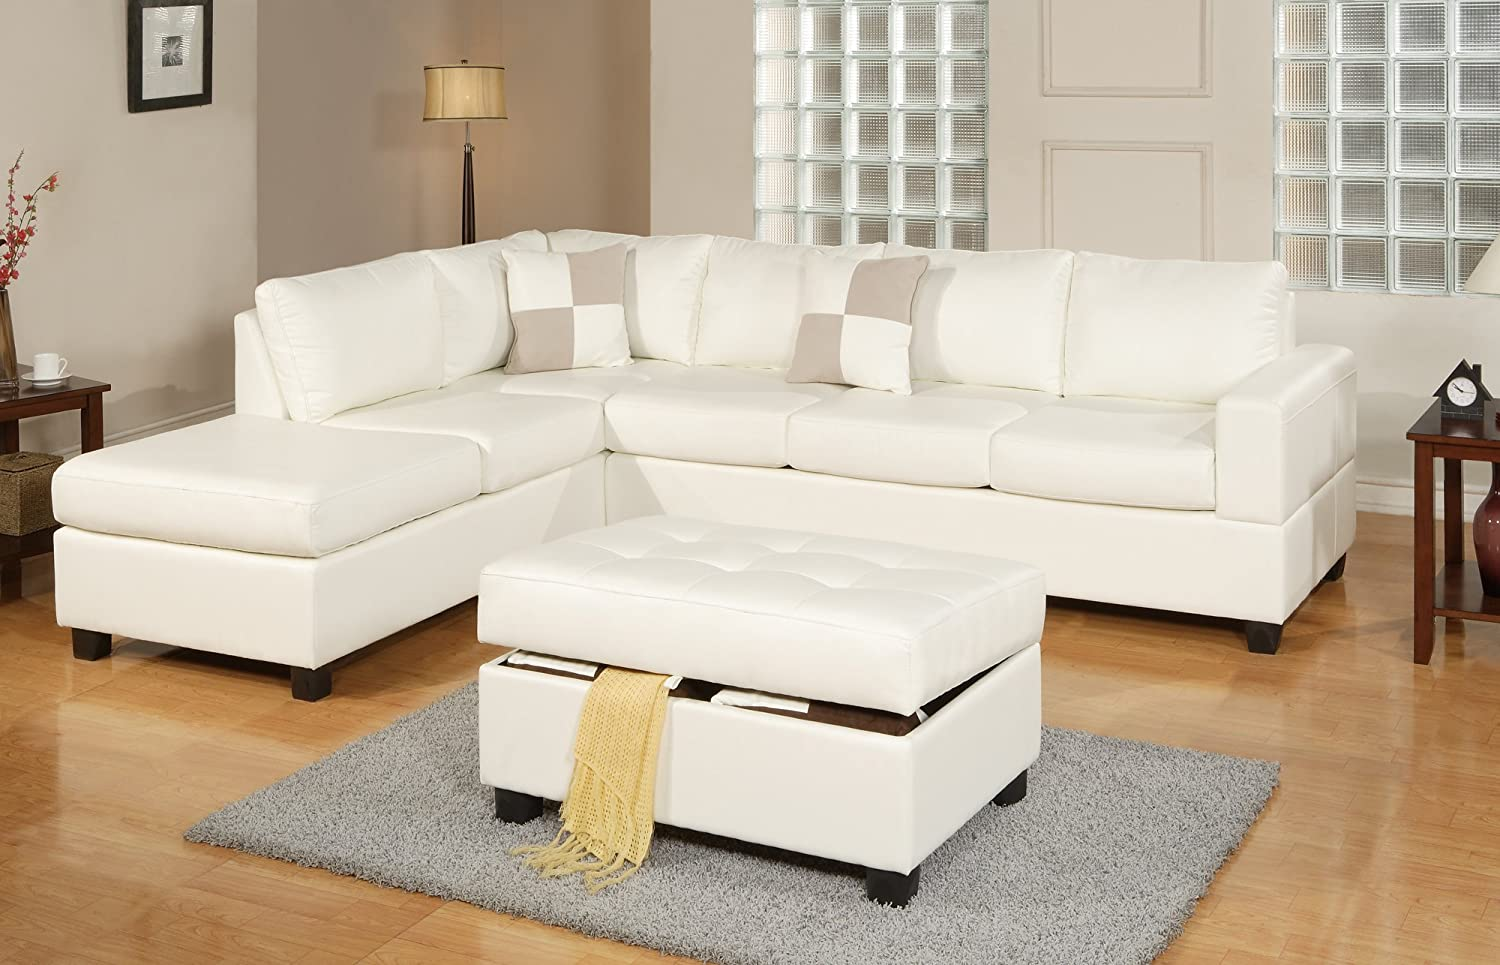 Amazon.com: BOBKONA Hampshire Collection 3-Piece Sectional Sofa ...